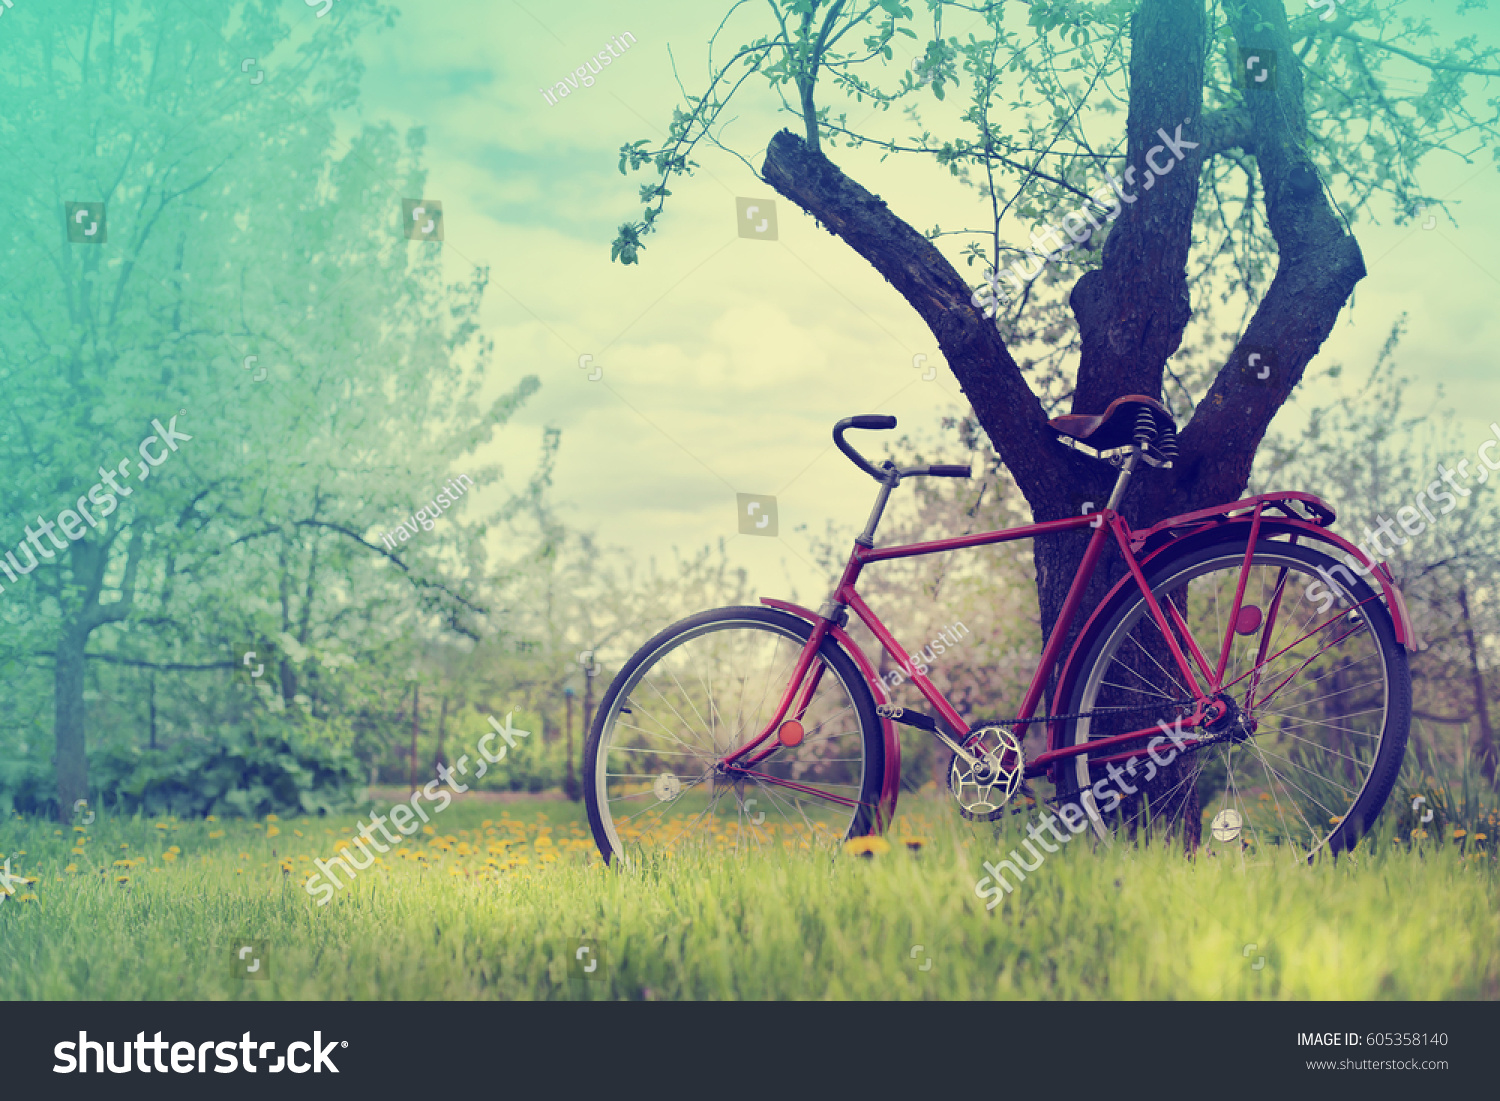 Vintage Bicycle Waiting Near Tree Against Stock Photo (Royalty Free ...